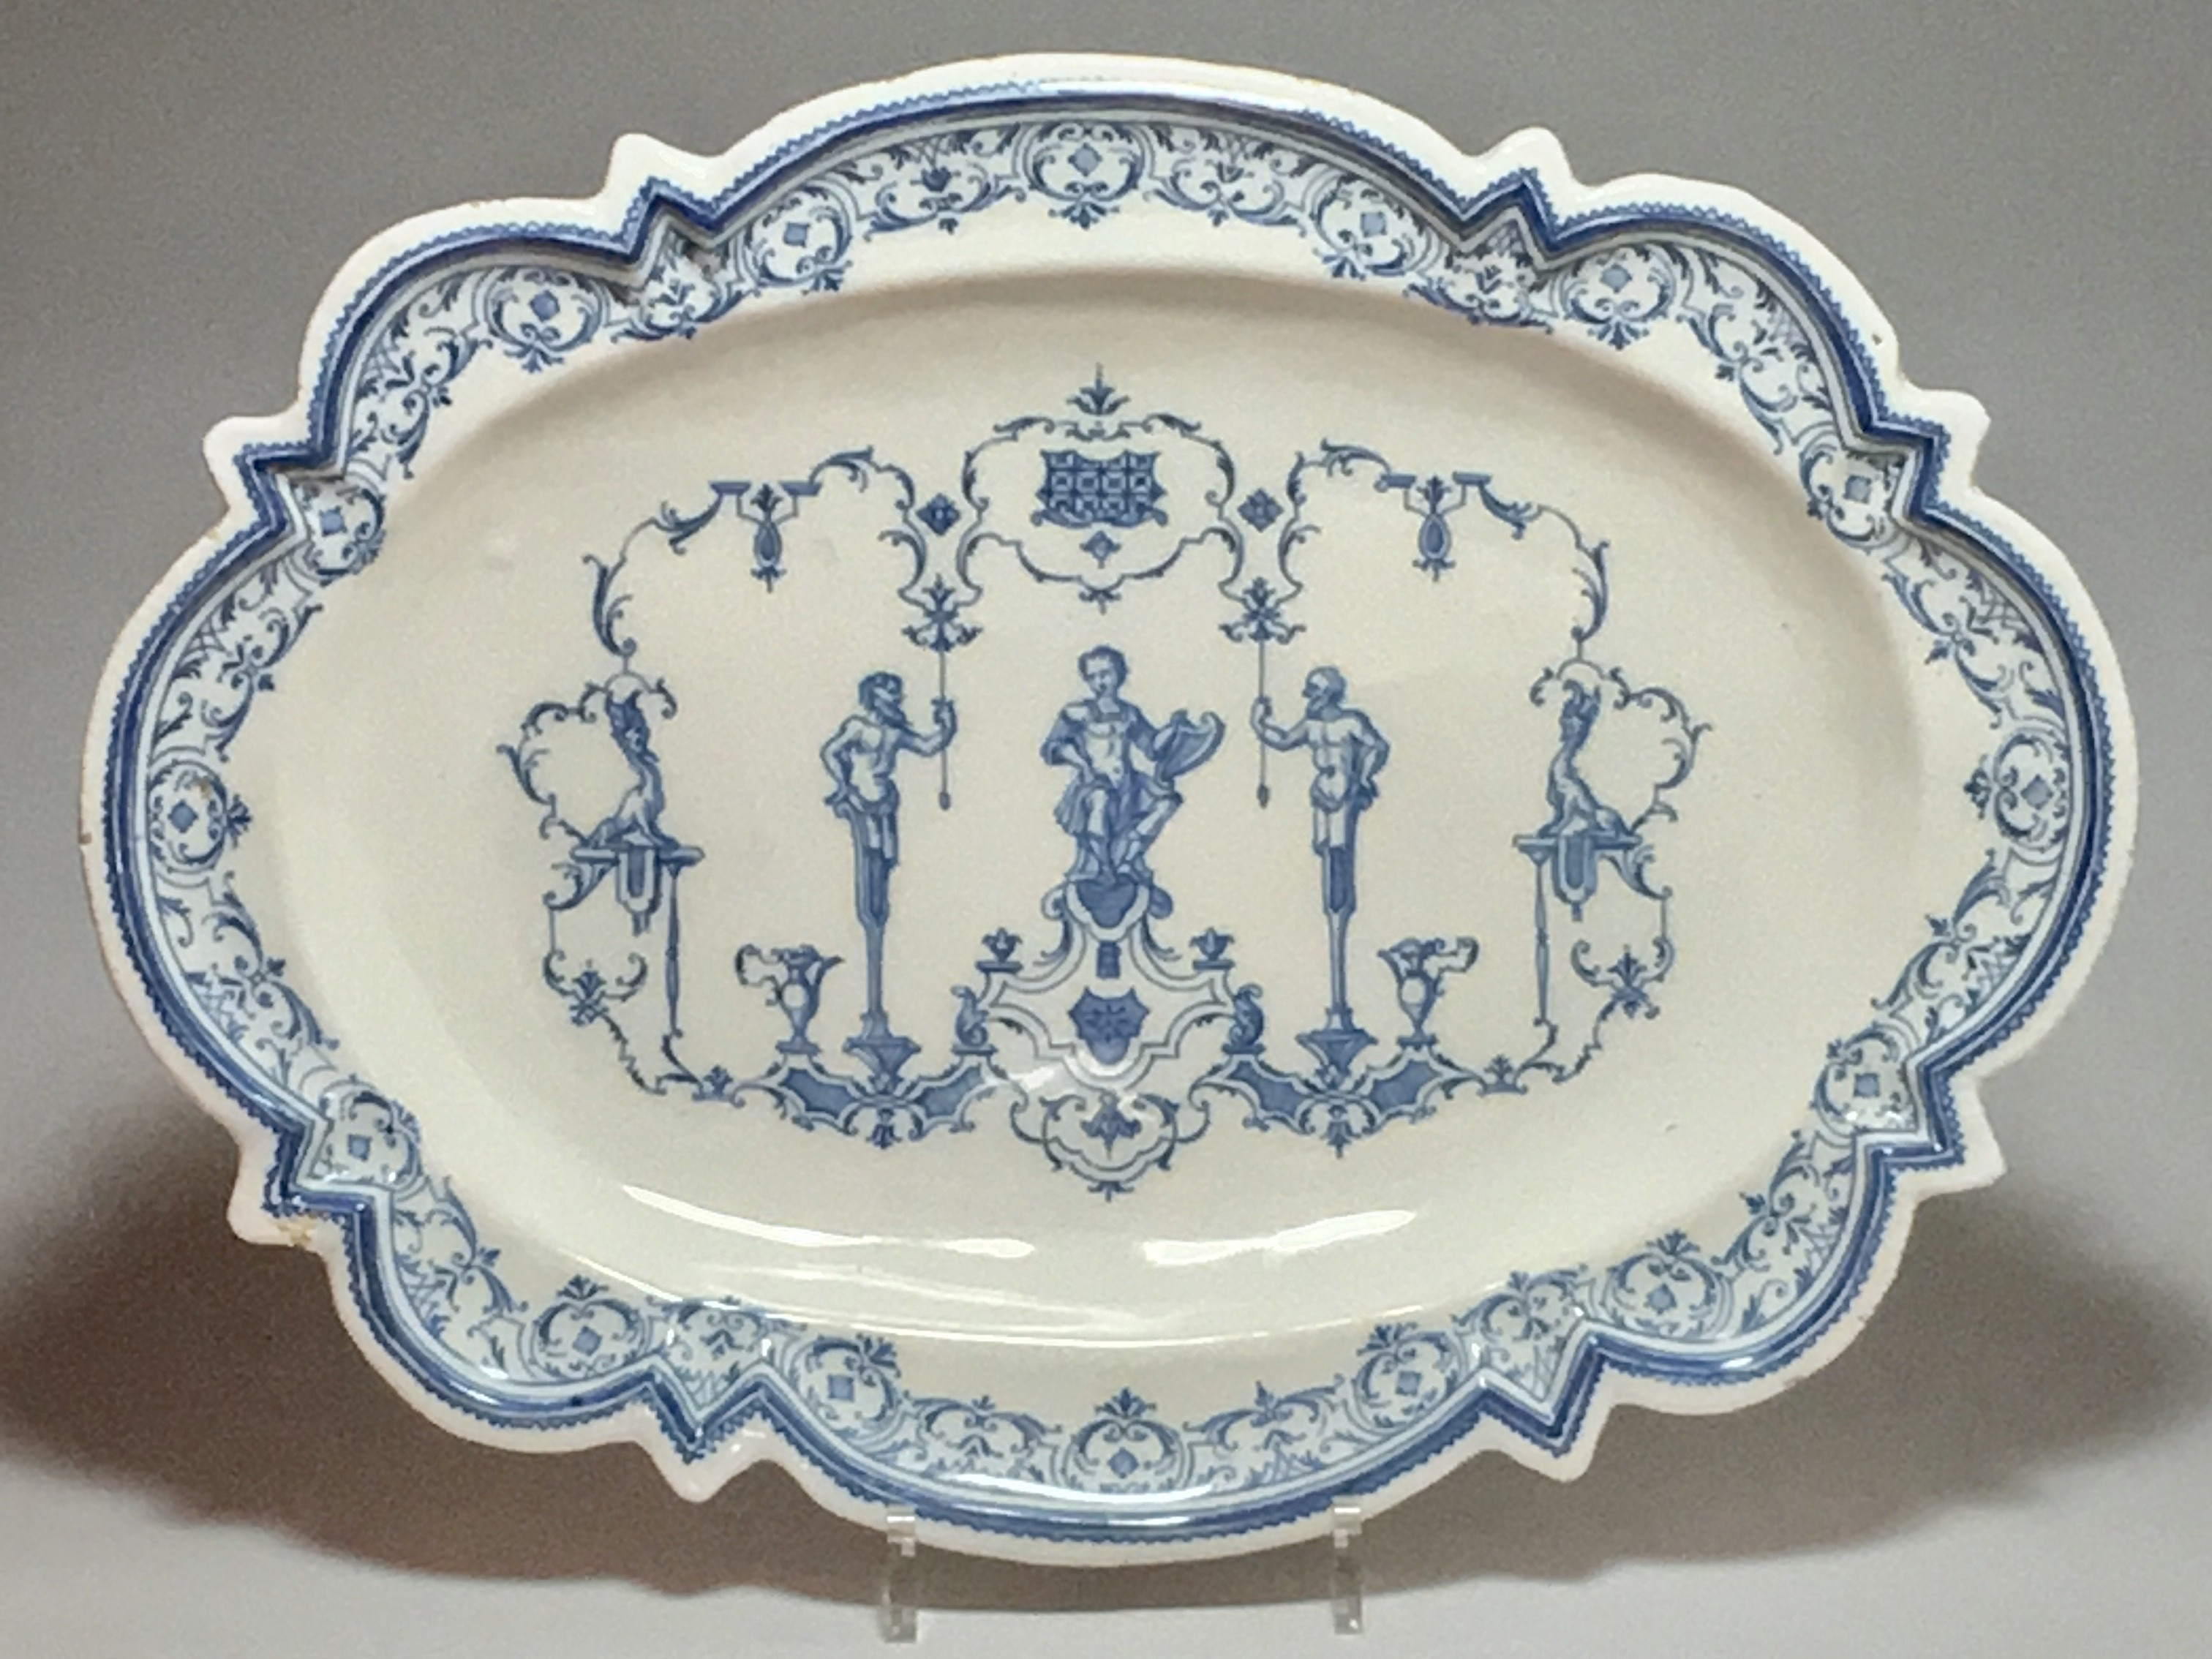 LYON - DISH WITH BERAIN - EIGHTEENTH CENTURY